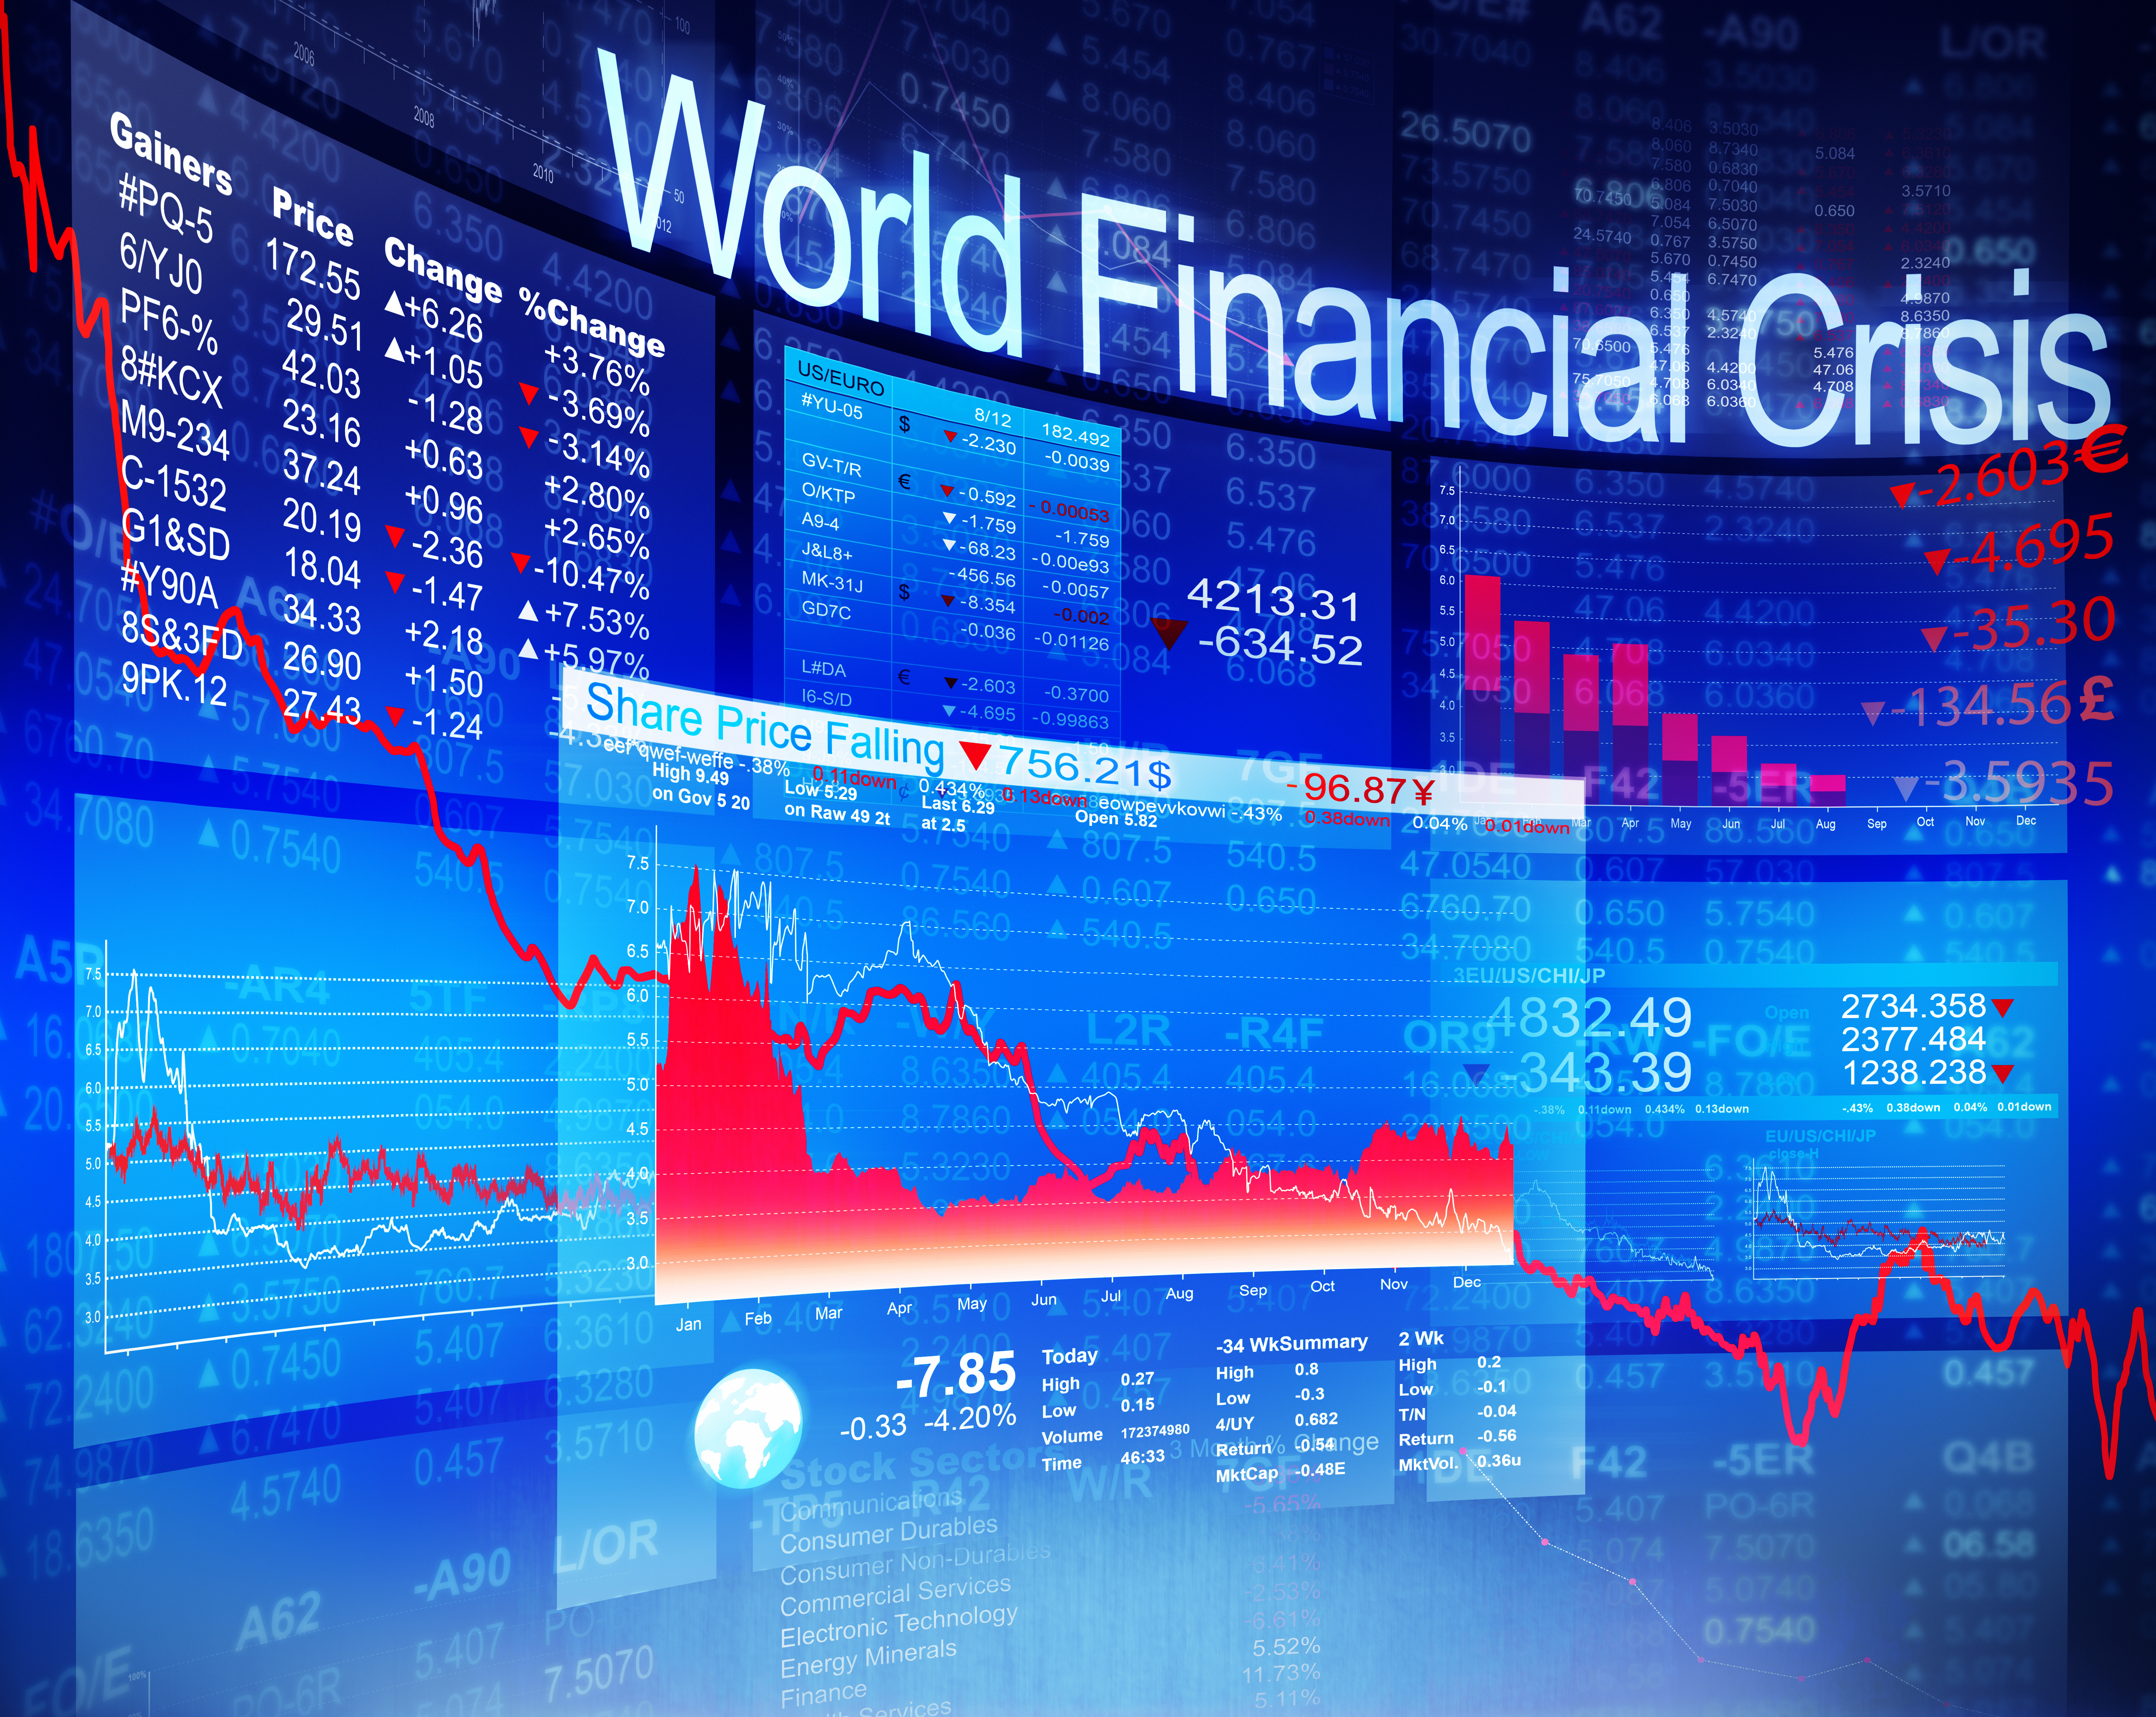 World Financial